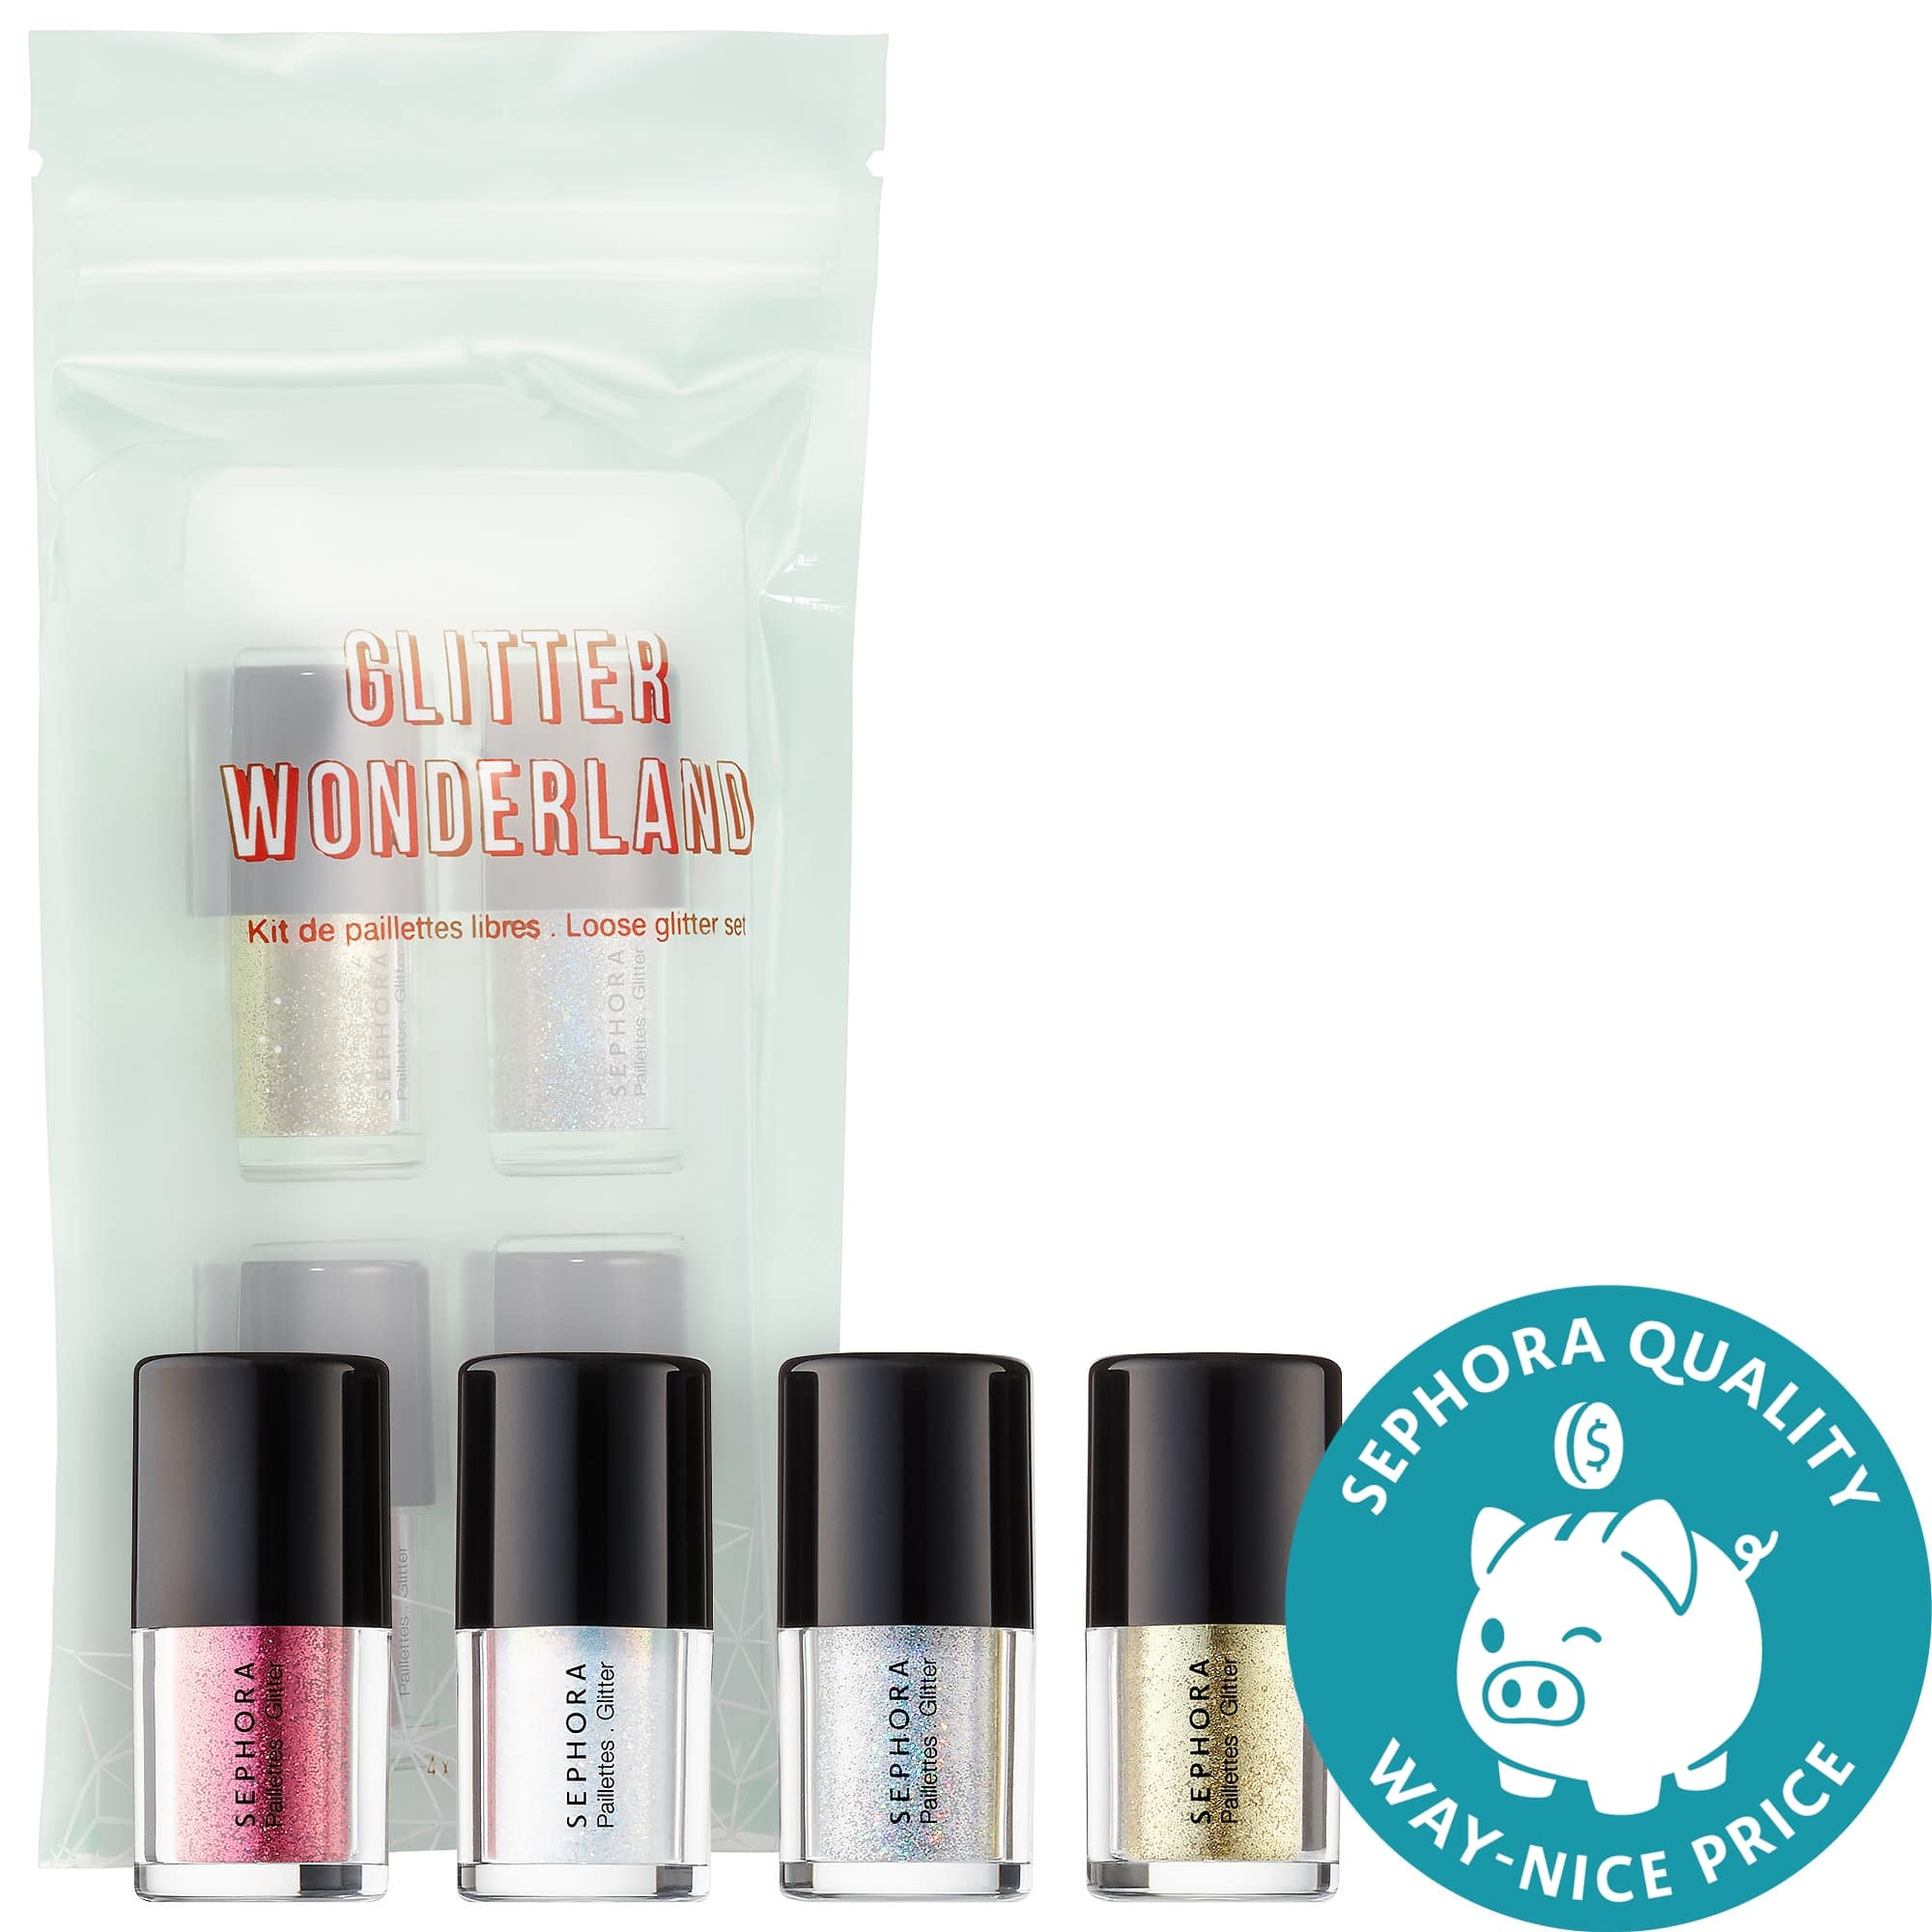 Sephora Collection Glitter Wonderland Set for Eyes + 2 Free Samples $4 w/ Free Shipping